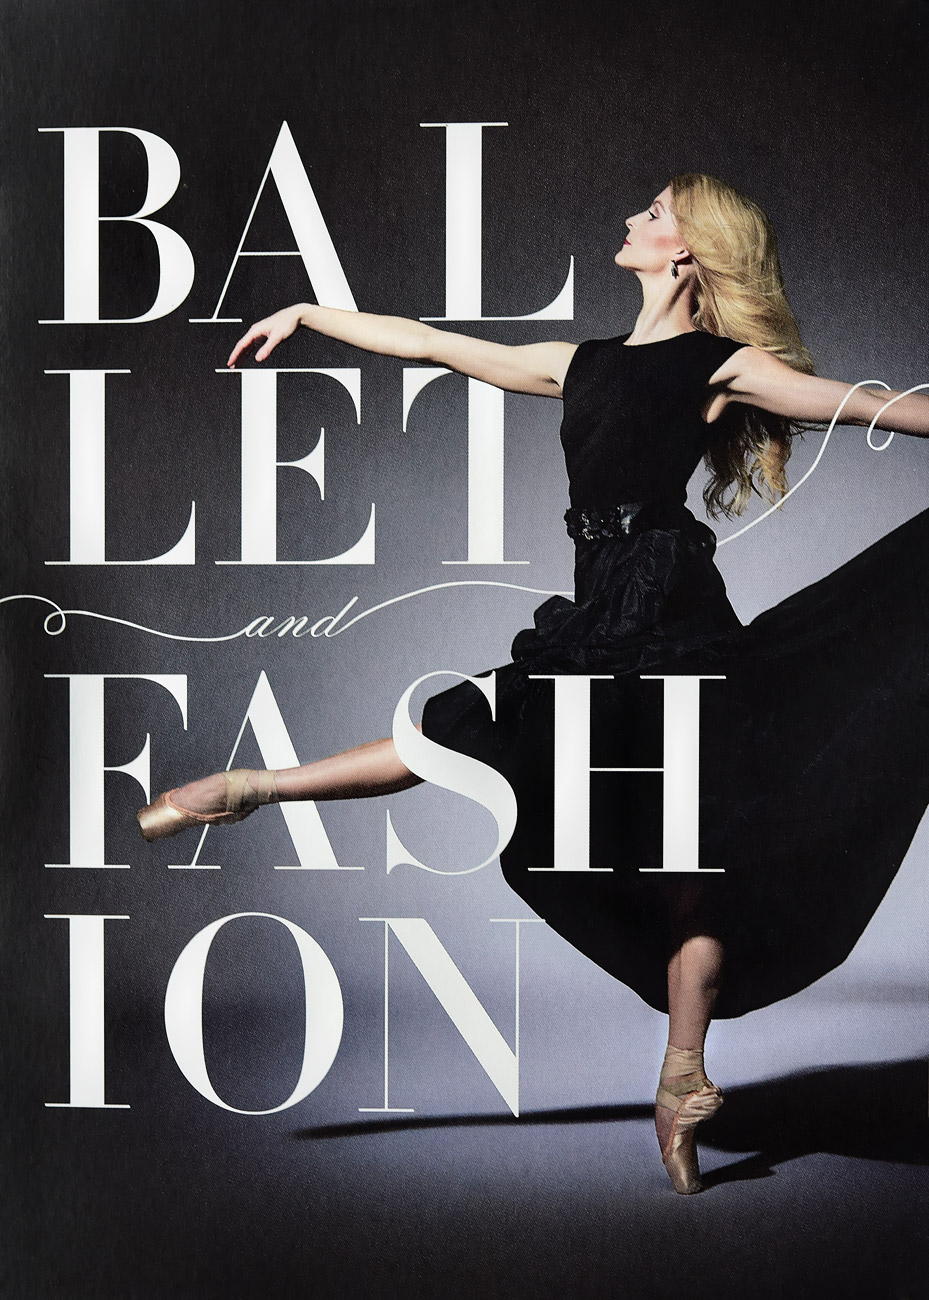 Advertising for Ballet and Fasion show.